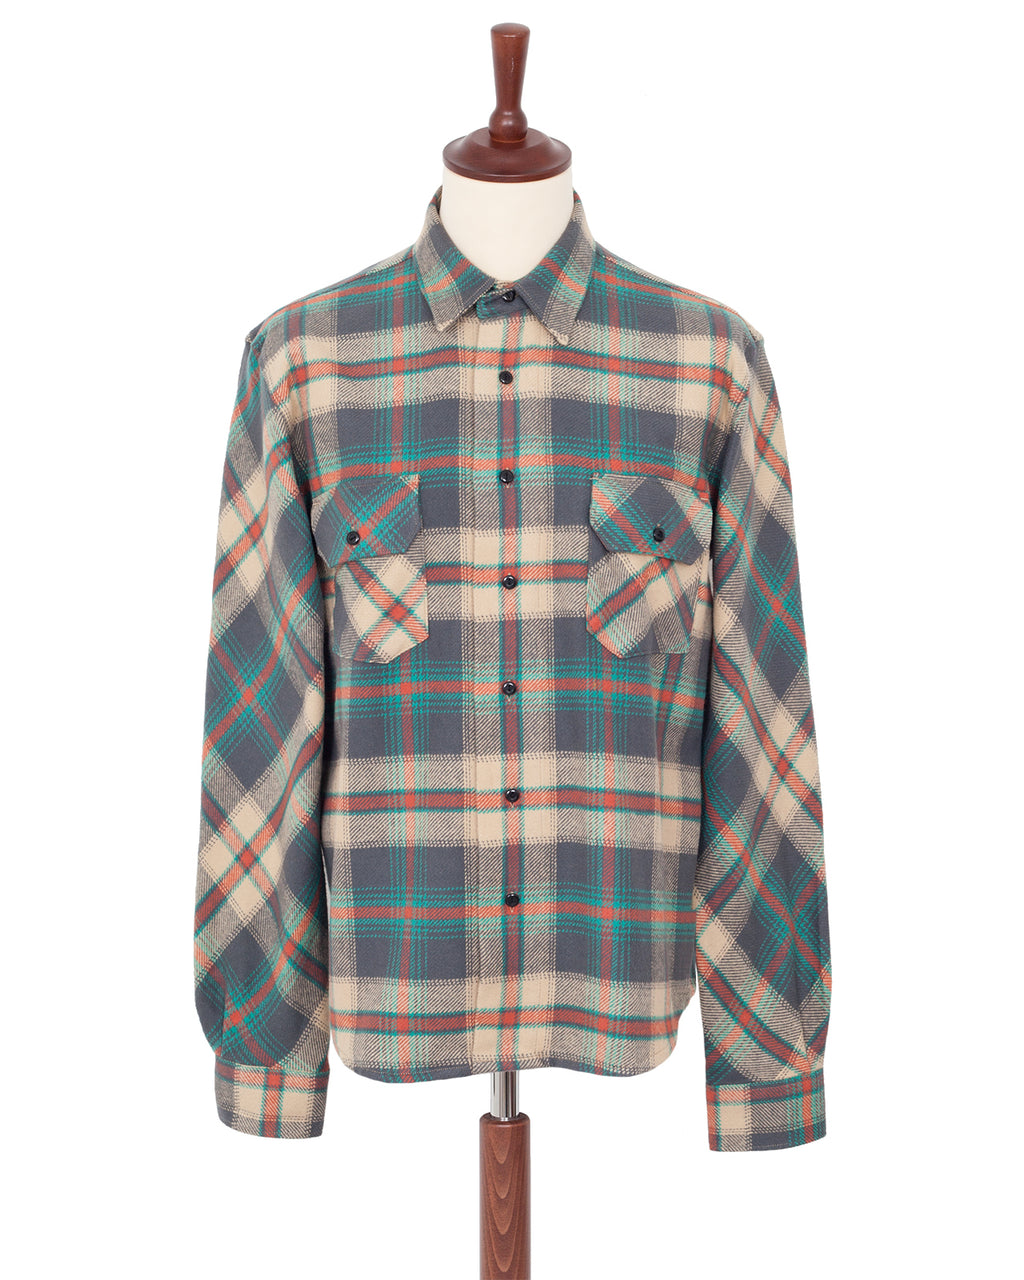 Indigofera Bryson Shirt, Check Flannel, Grey/Beige/Petrol/Red